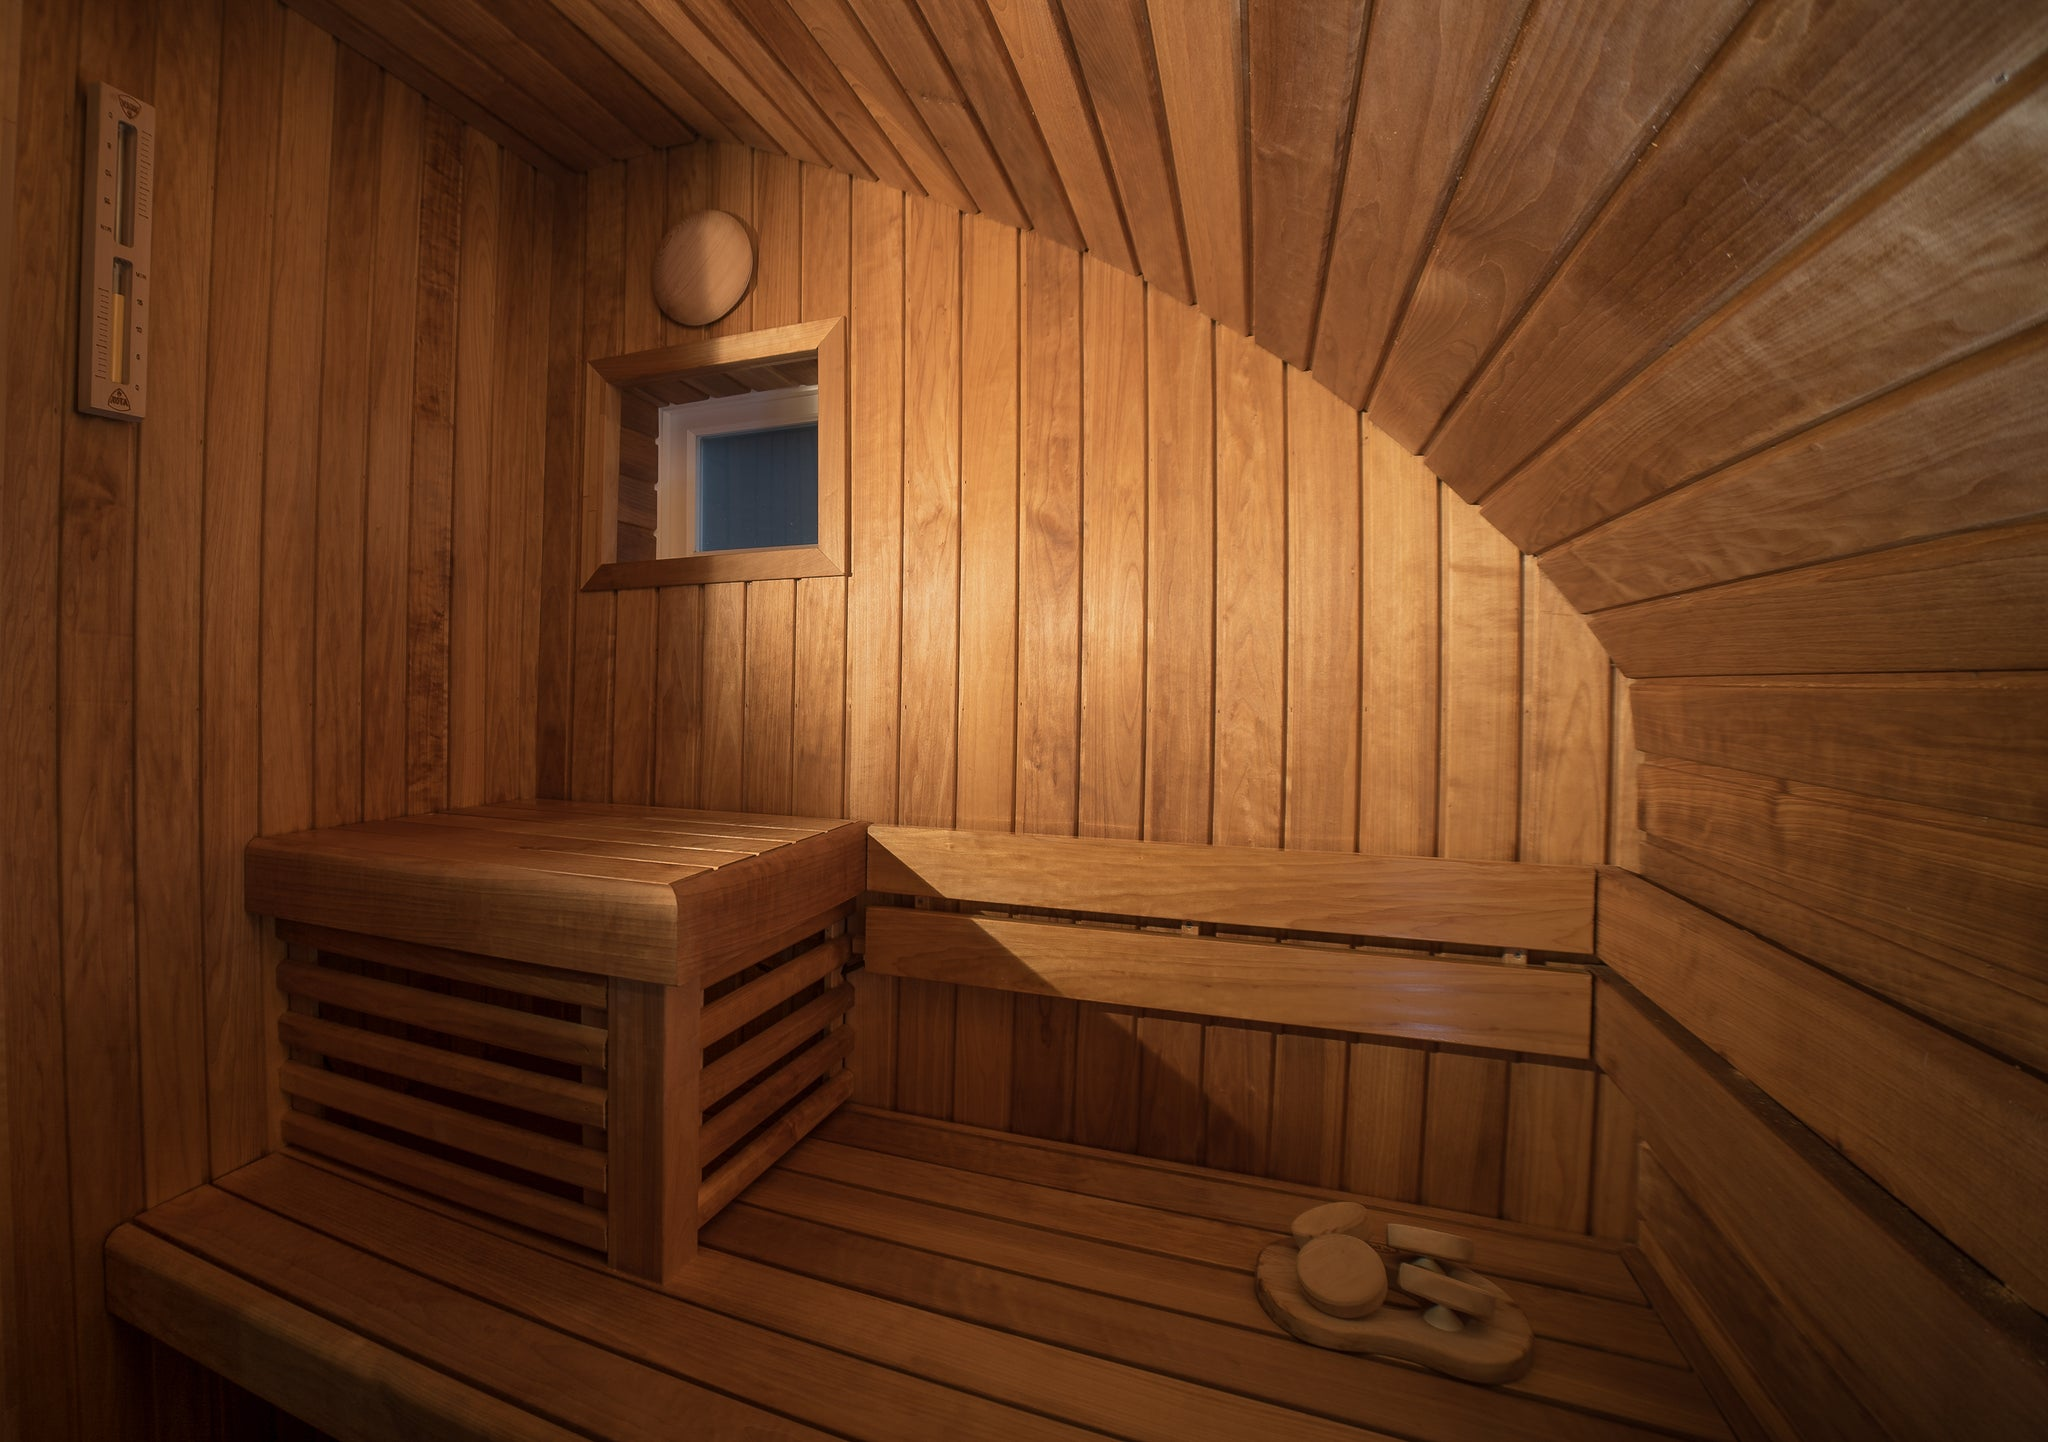 Bespoke Indoor Micro Sauna Installation, Burghley Road, Kentish Town: North London